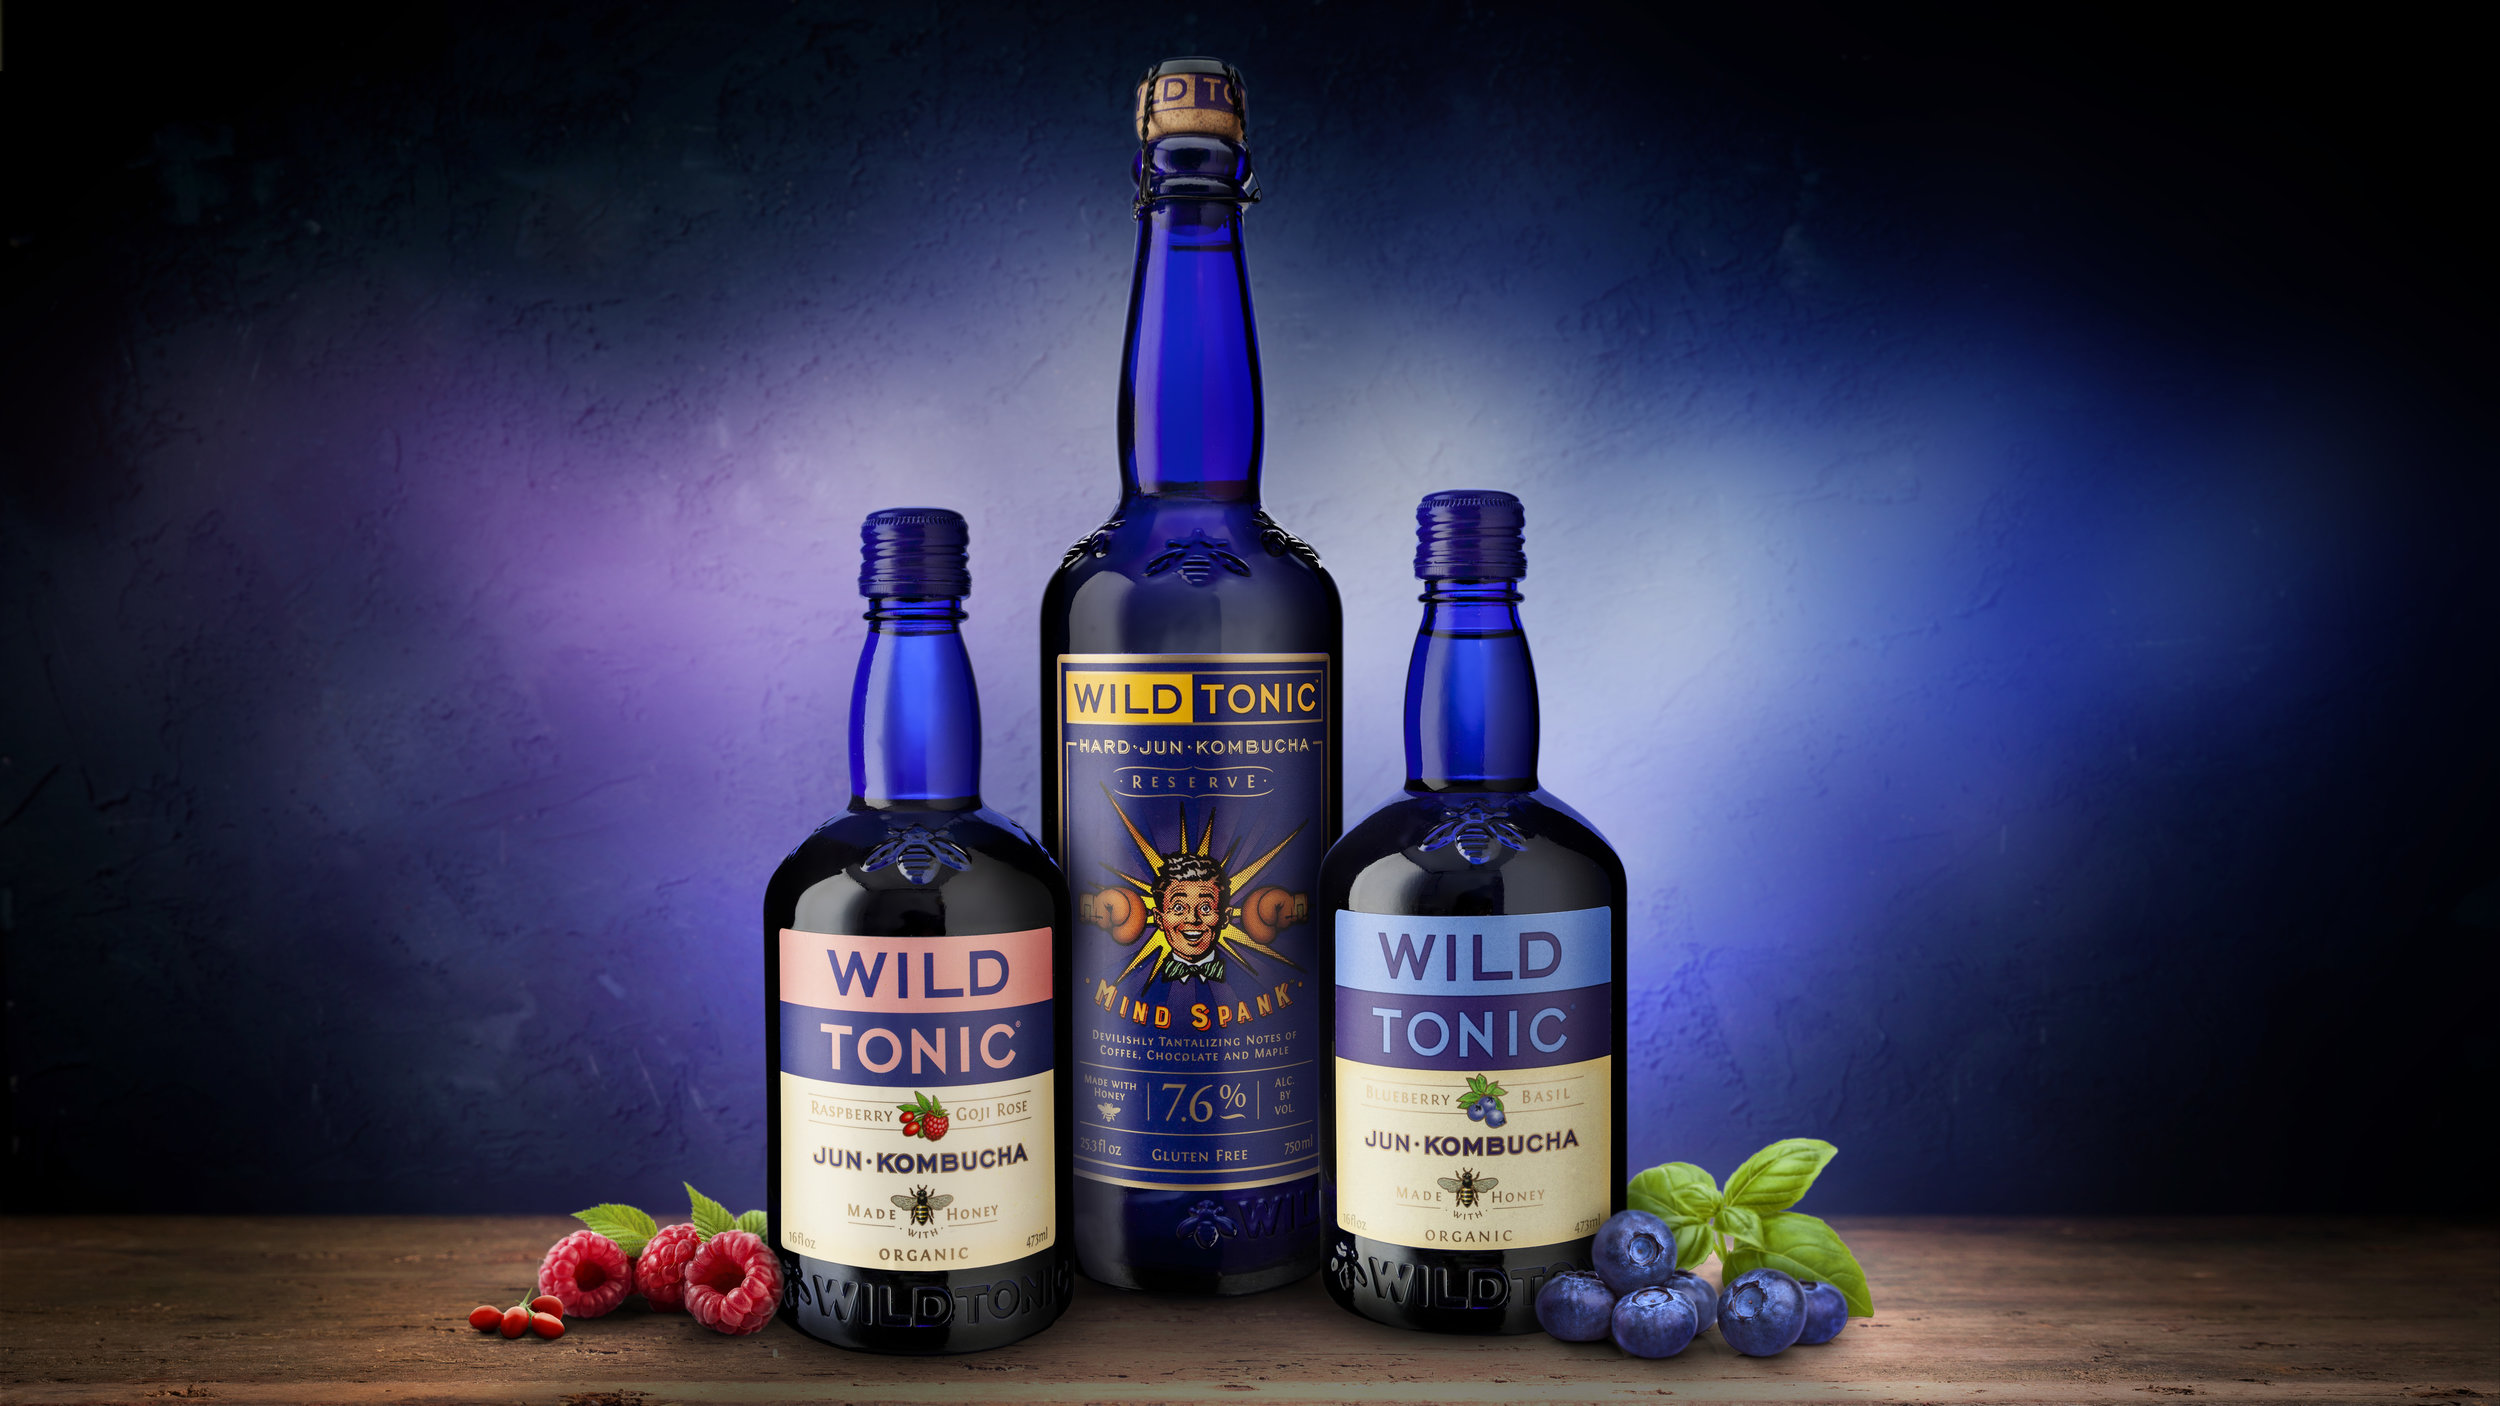 WILD TONIC® To Bring Barrel-Aged Kombucha For a Limited Time In Nov.